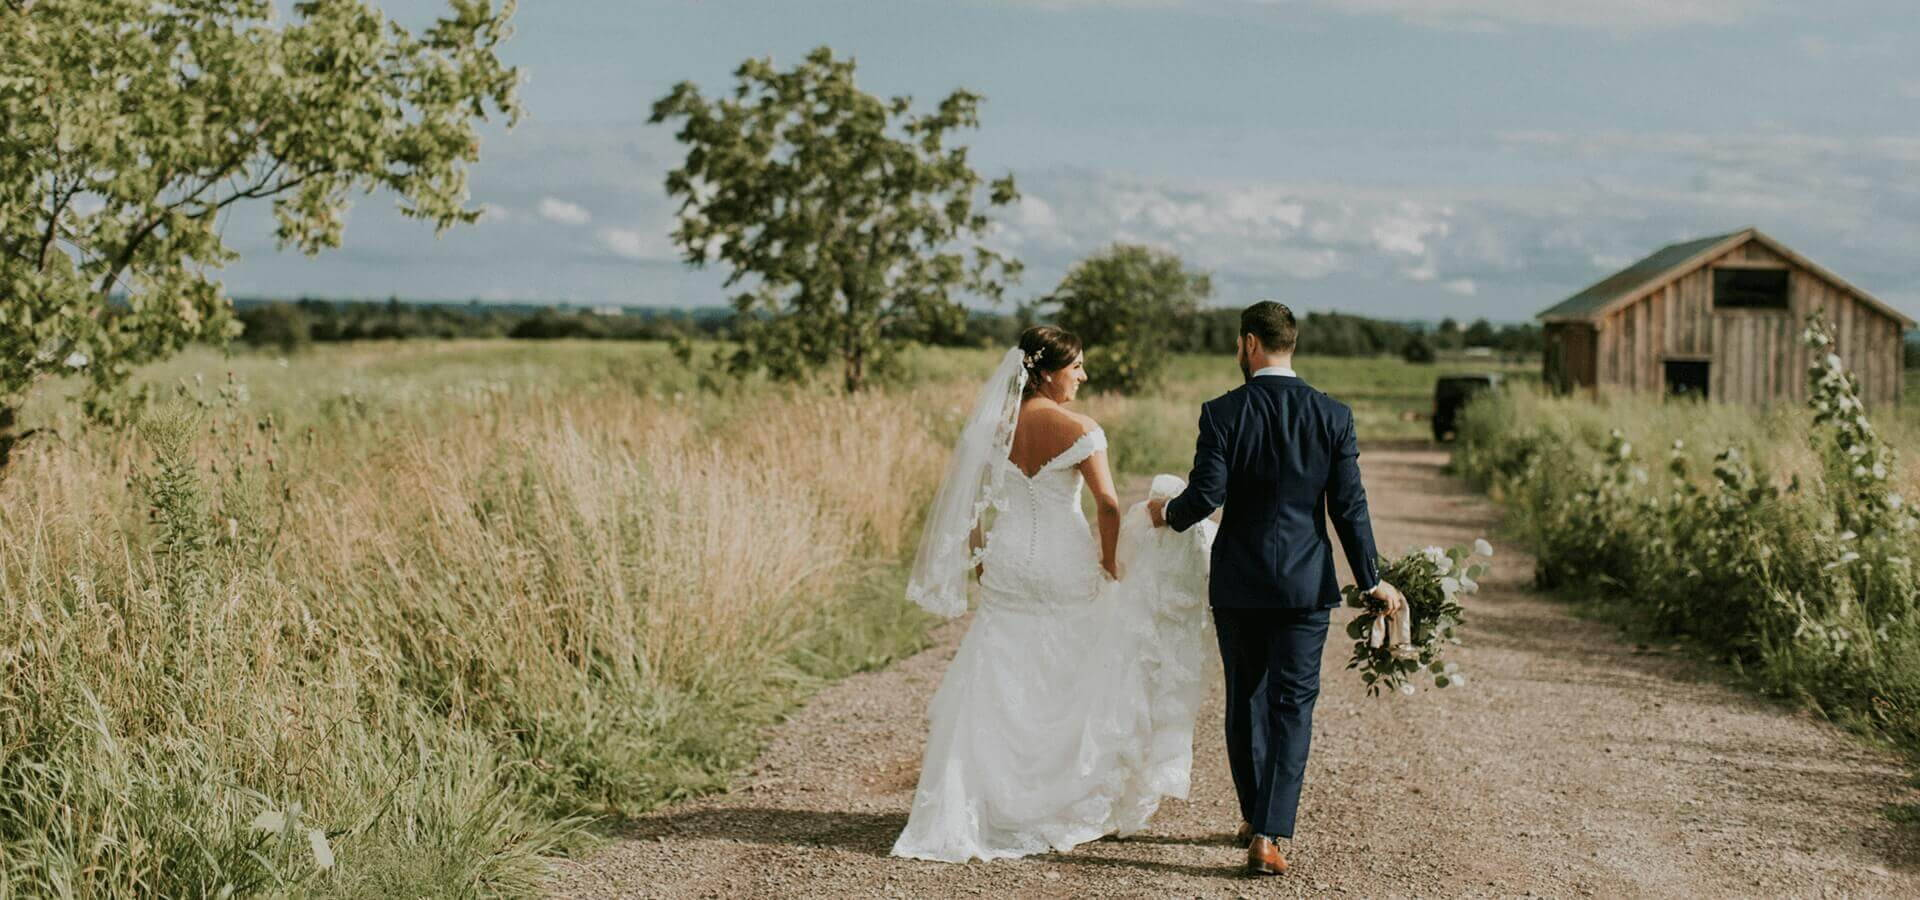 Hero image for Courtney and Nick's Elegant Barn Wedding at Earth to Table Farm